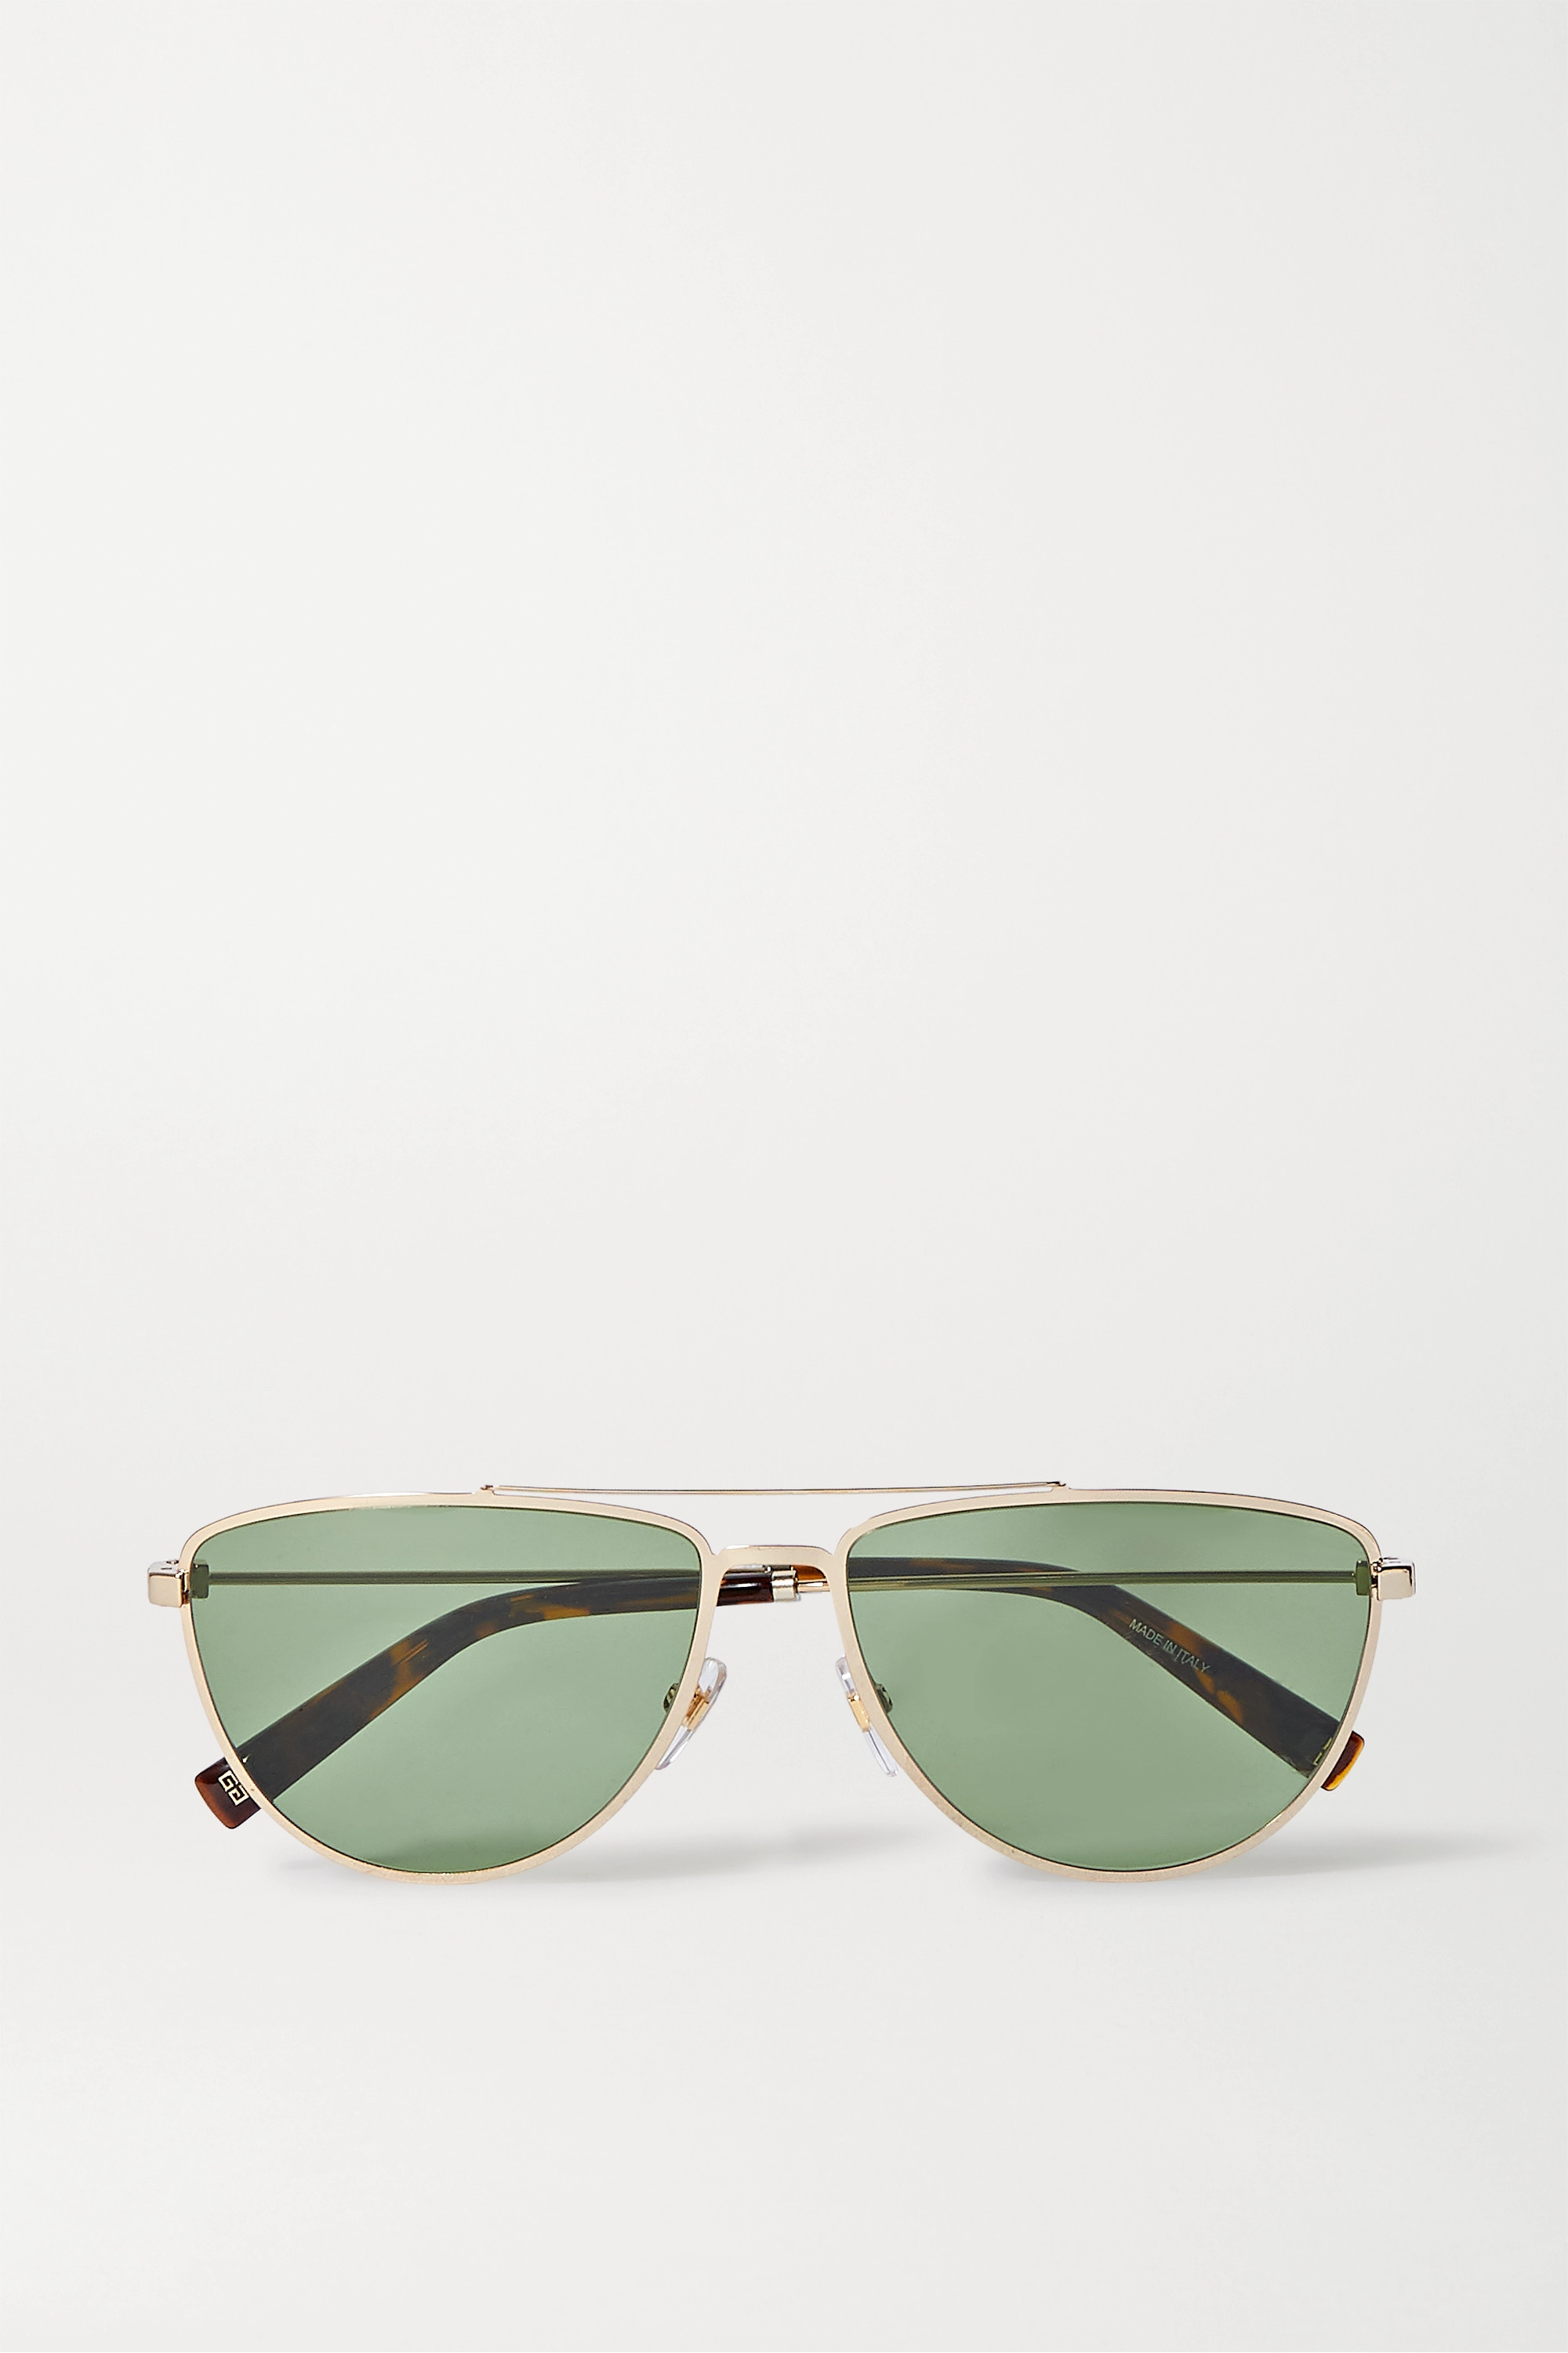 Givenchy Aviator-style gold-tone and tortoiseshell acetate sunglasses